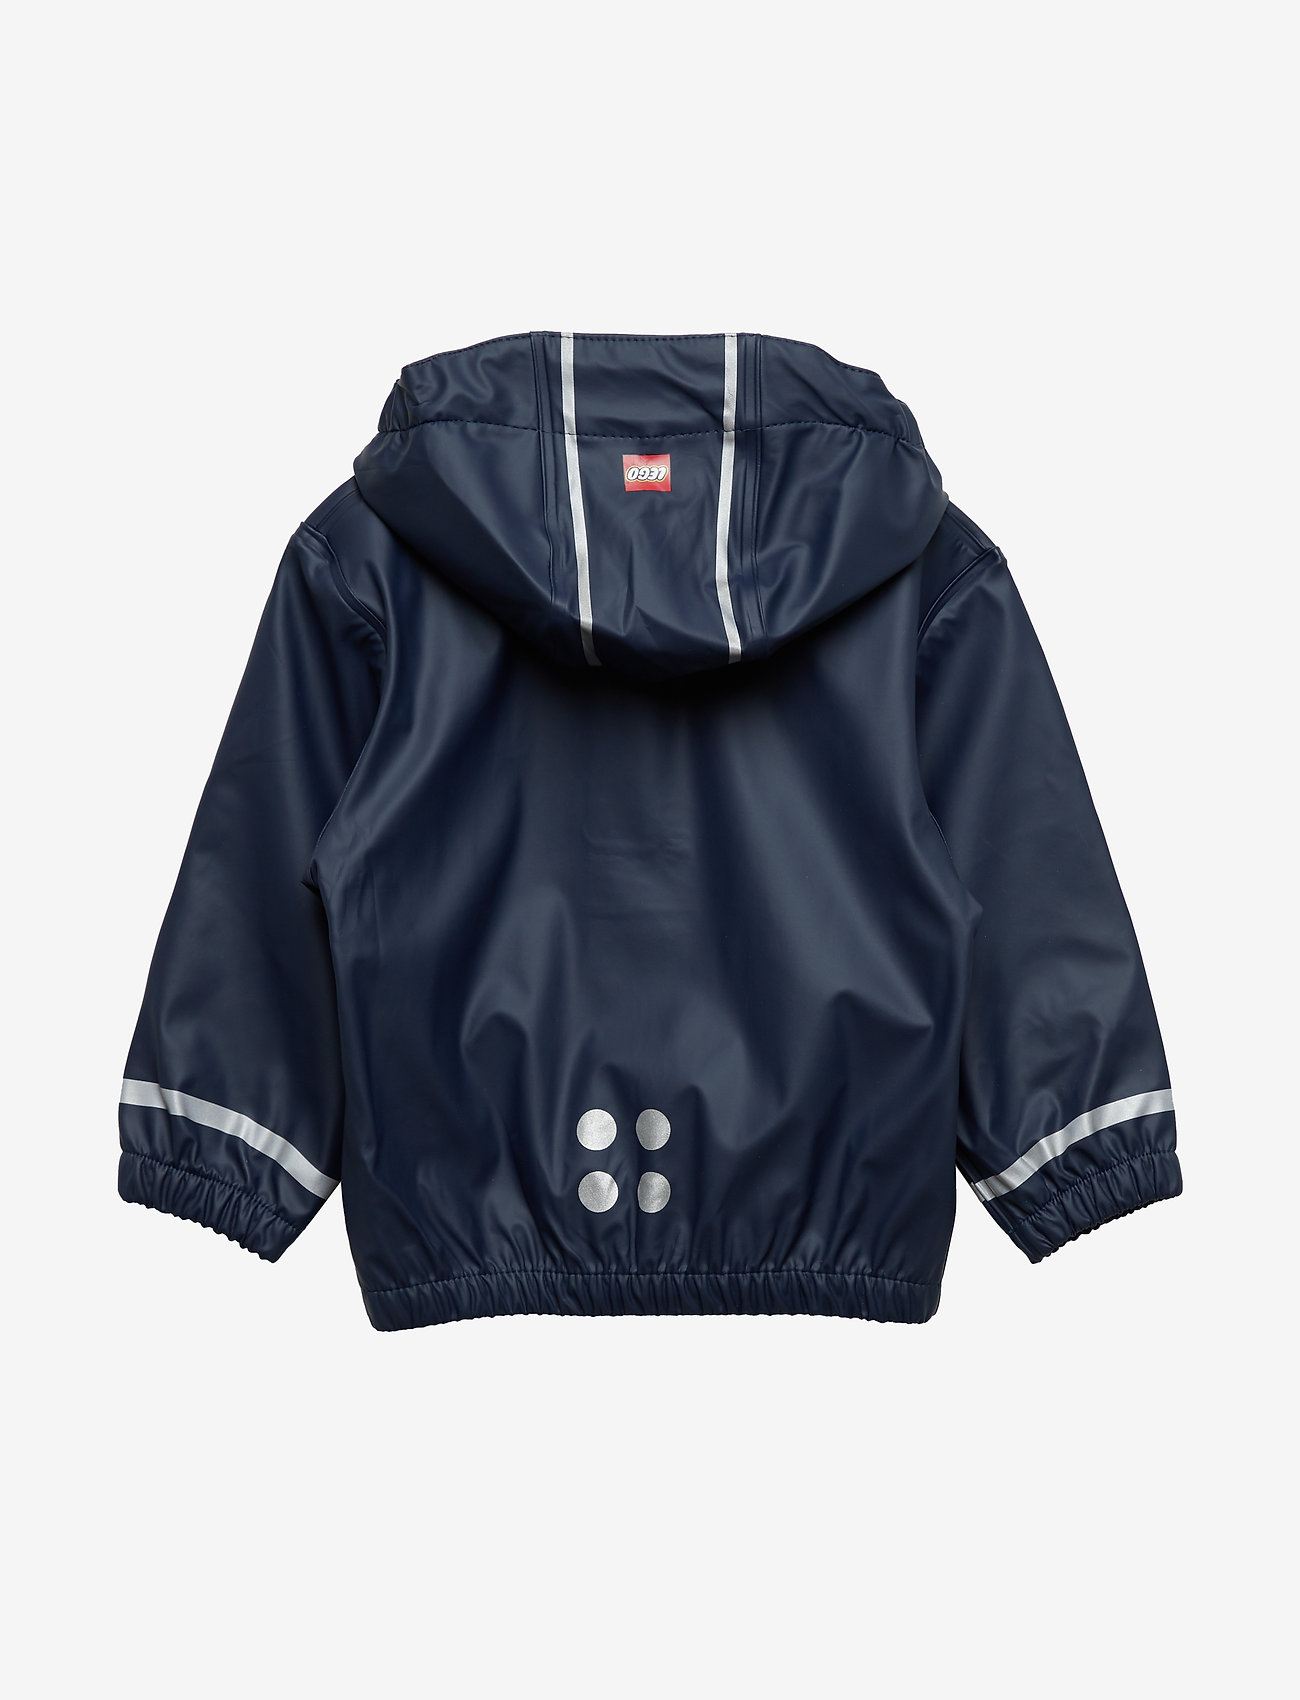 Lego wear - JUSTICE 101 - RAIN JACKET - jakker - dark navy - 1